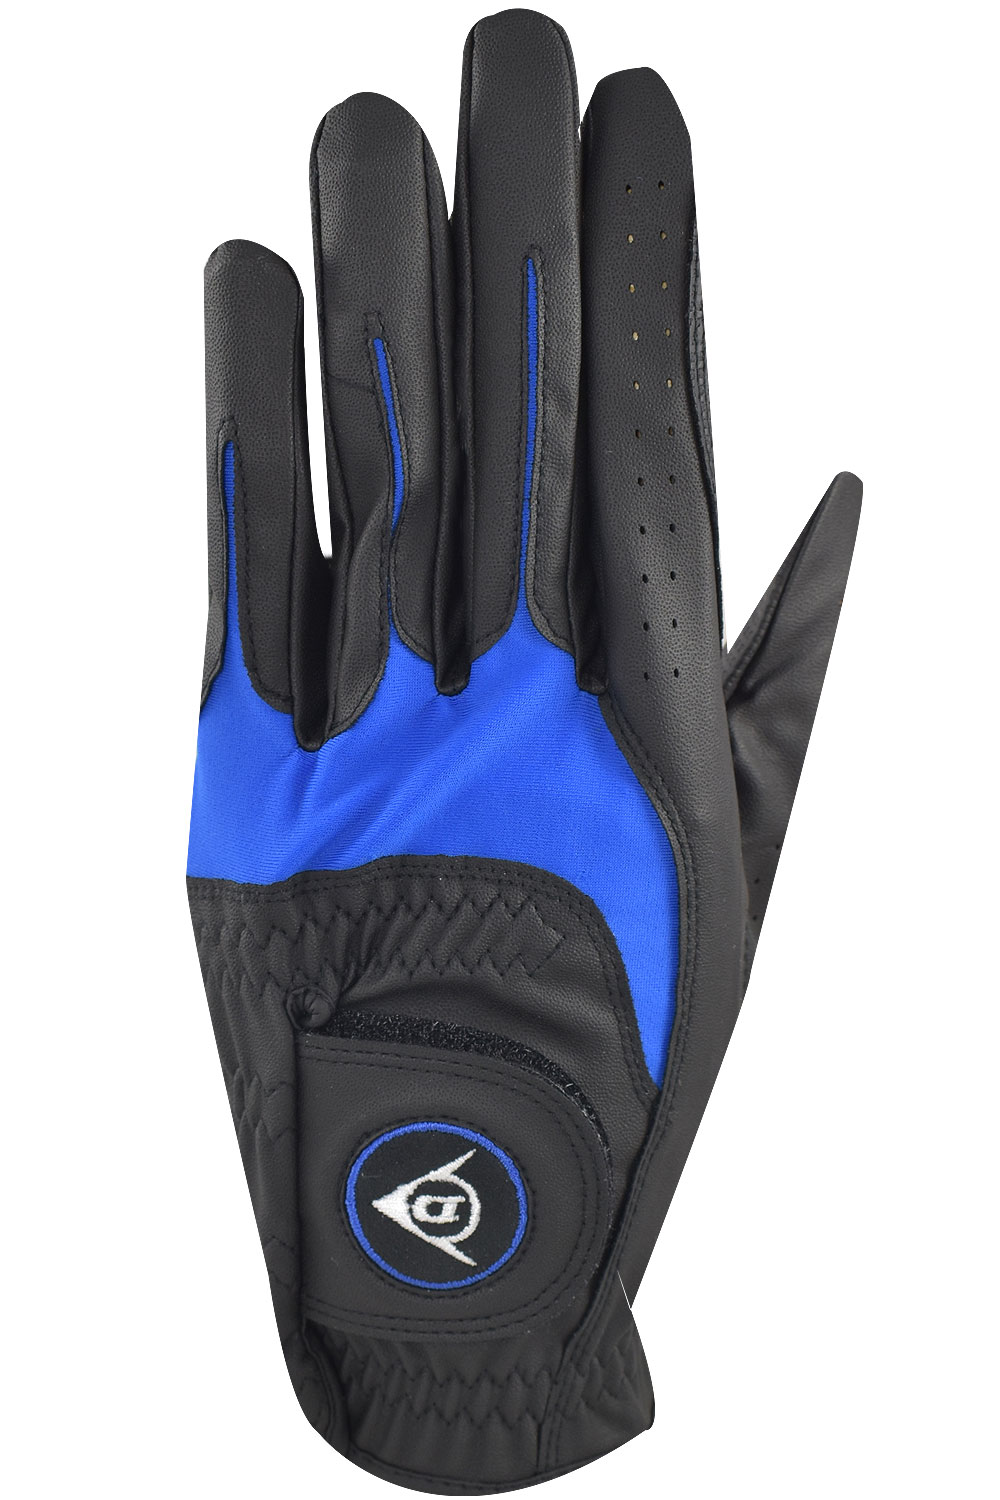 Dunlop Golf- MLH All Weather Glove by Dunlop